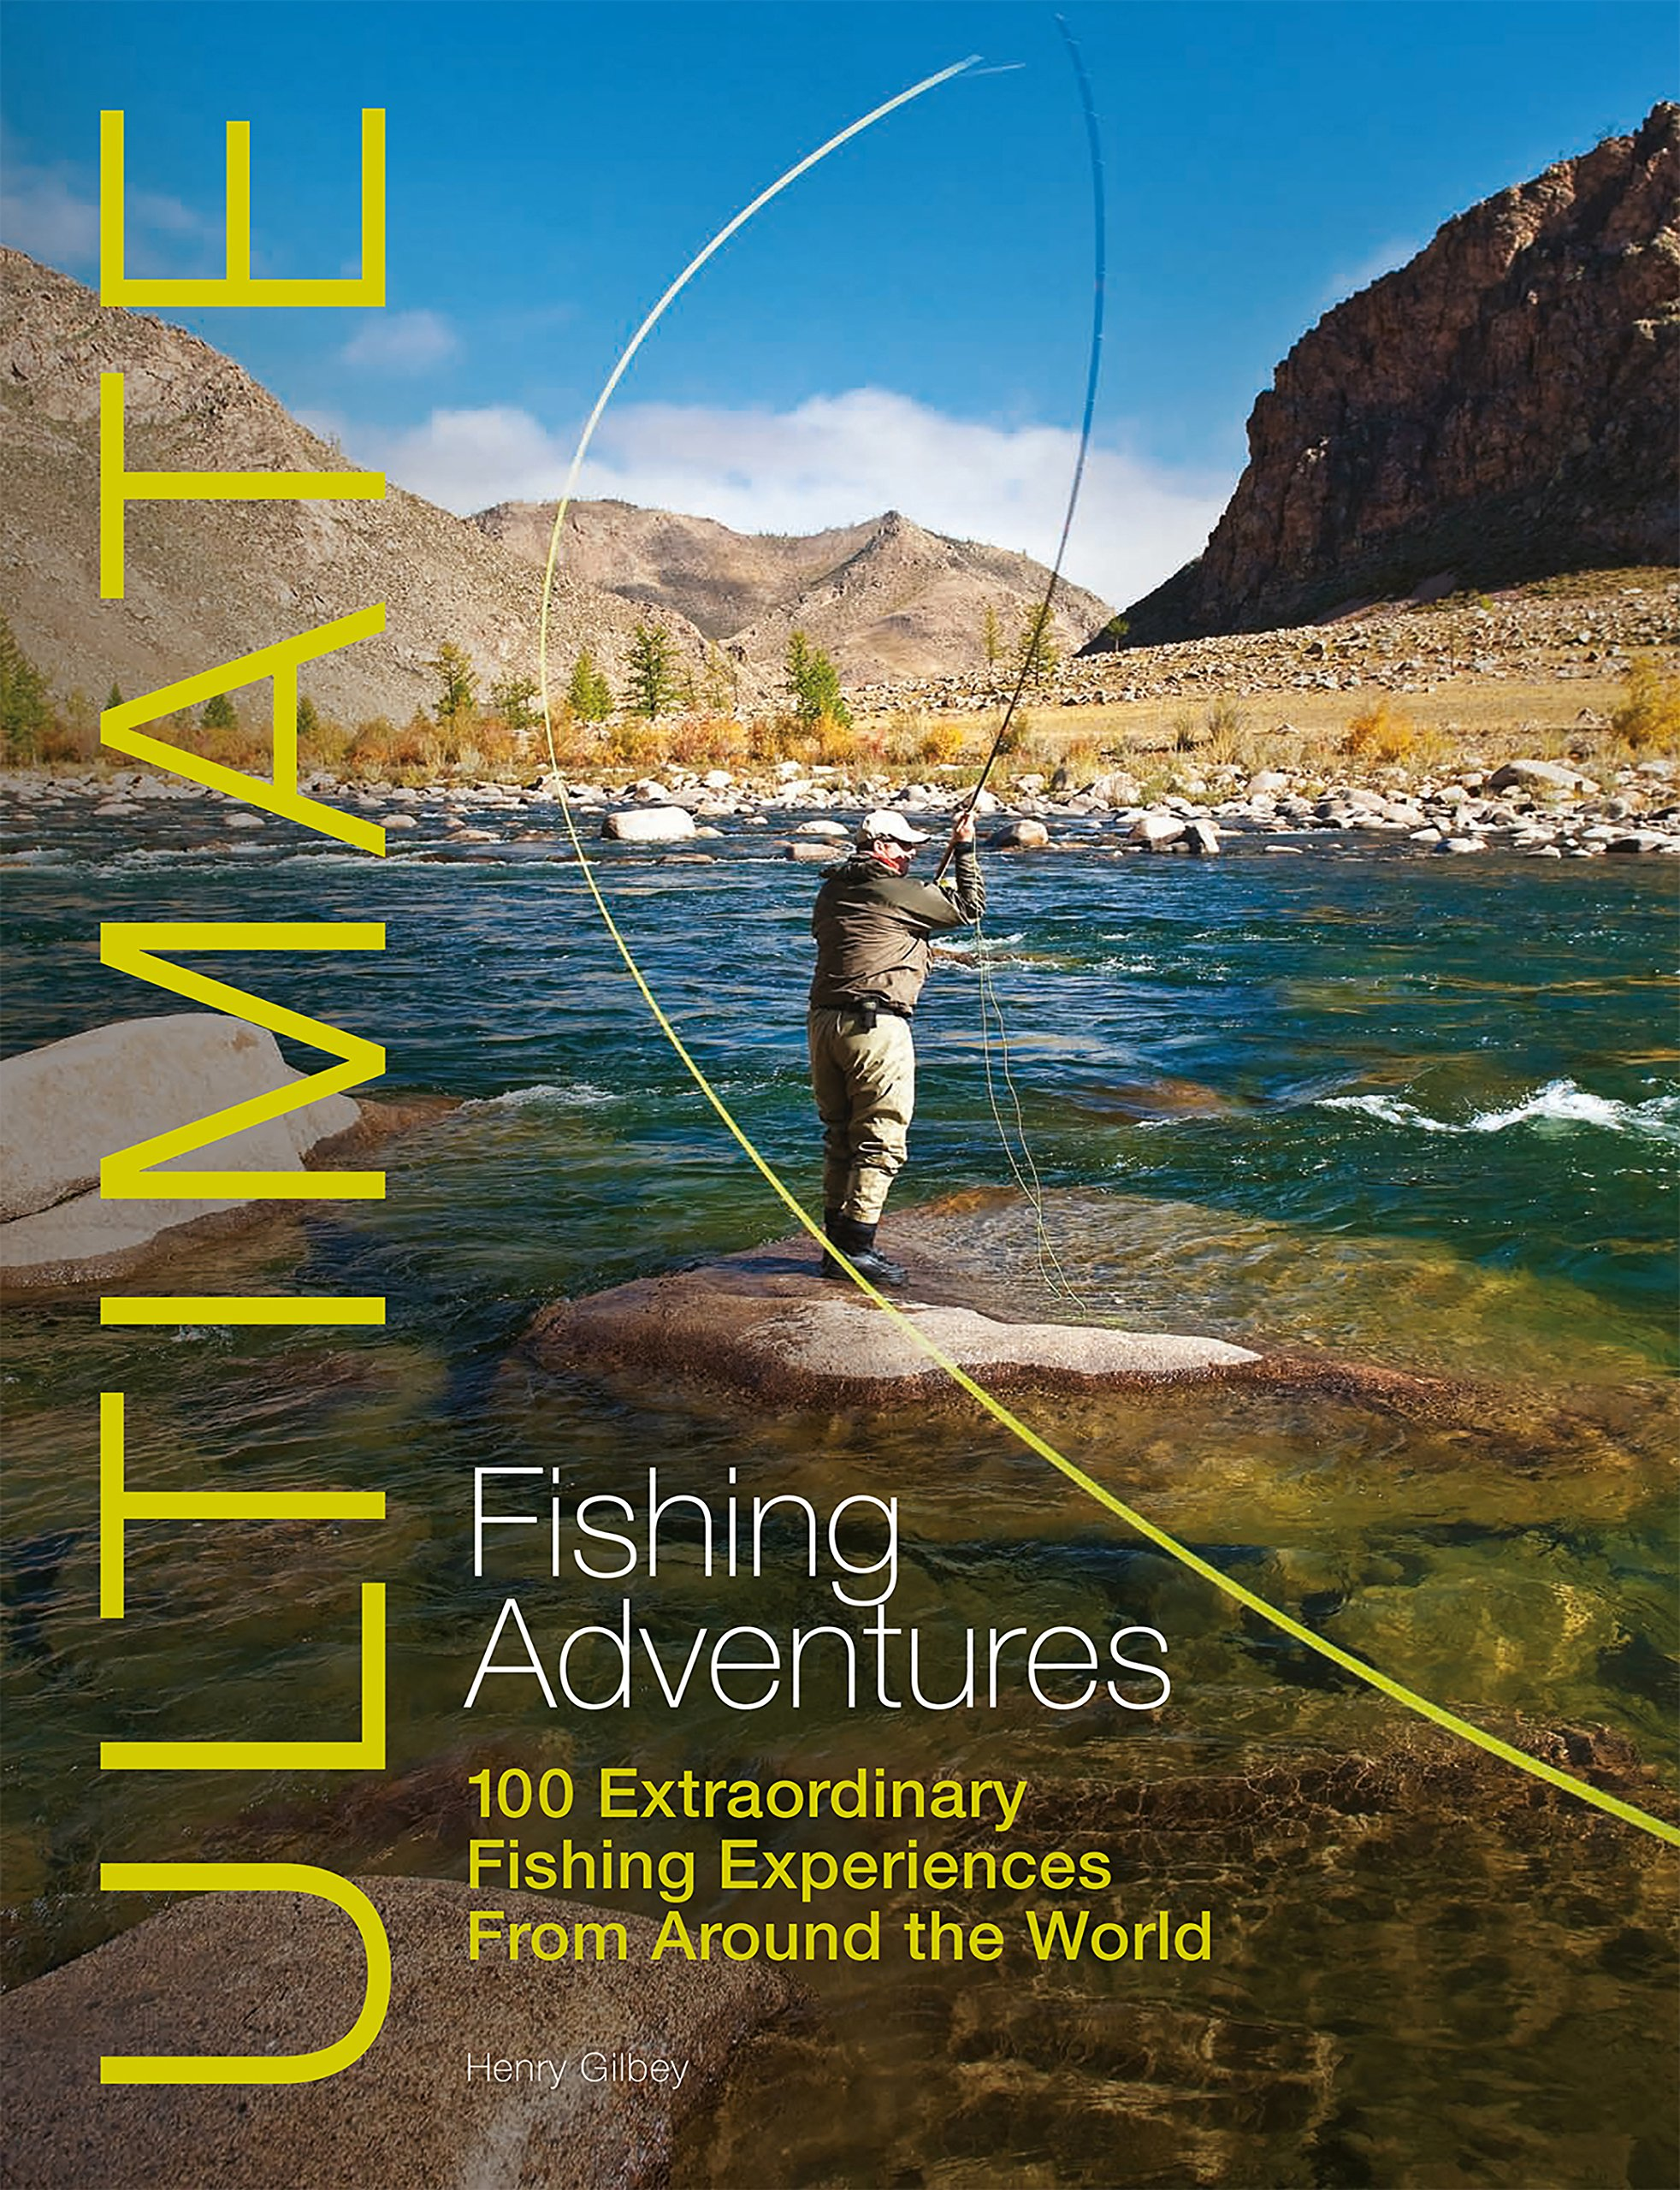 Ultimate Fishing Adventures: 100 Extraordinary Fishing Experiences Around the World (Wiley Nautical)